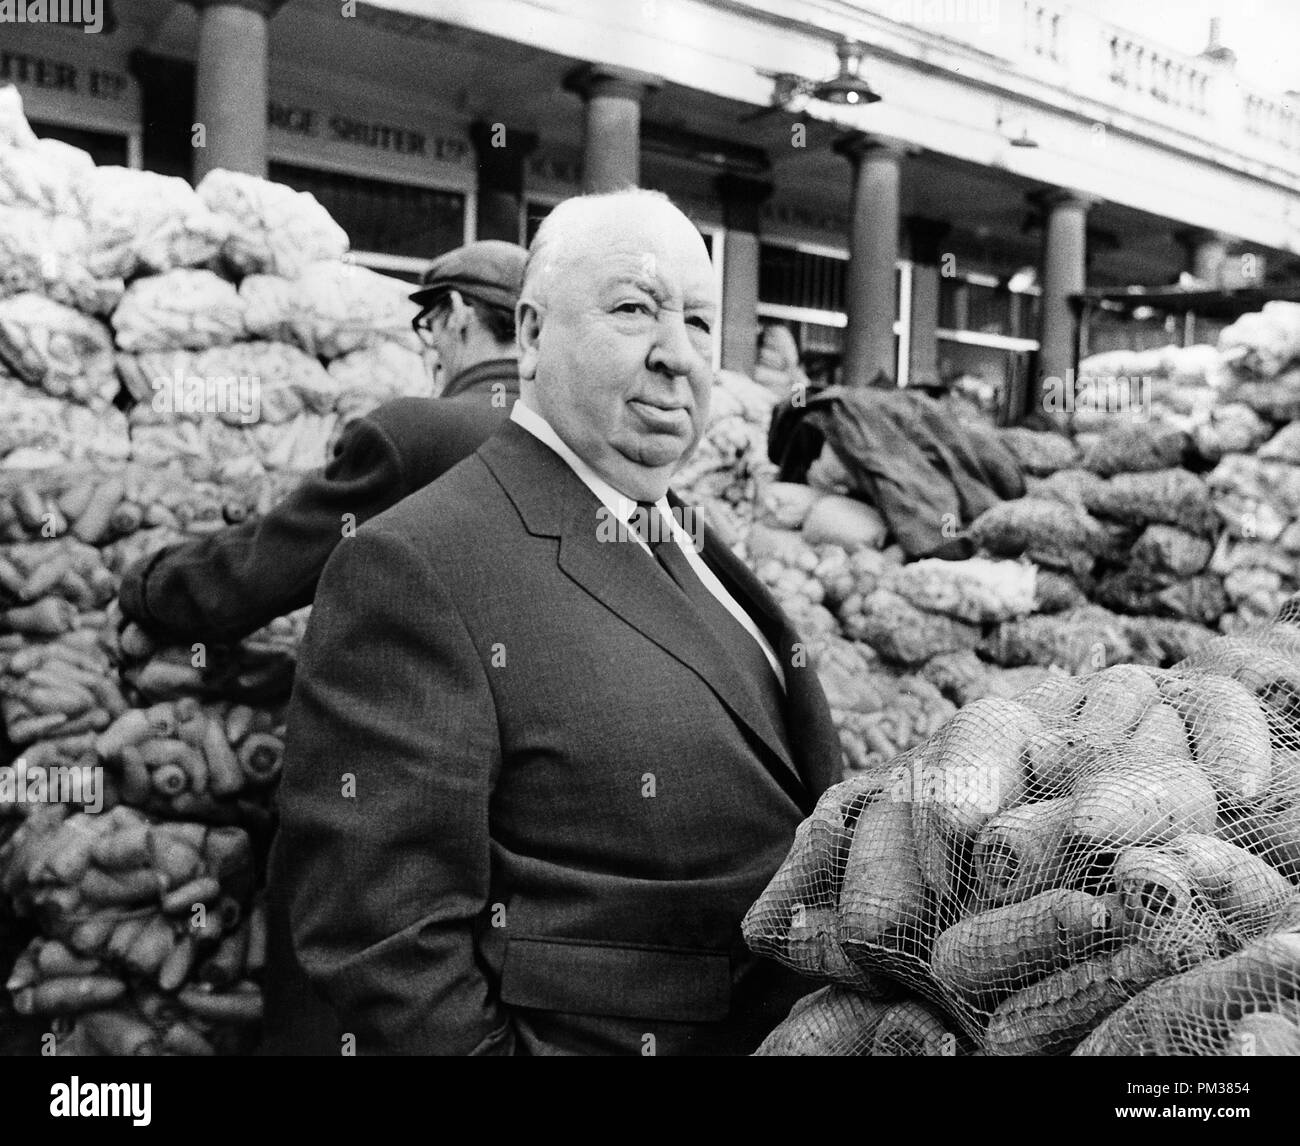 Alfred Hitchcock, 1971.  File Reference # 1154_004THA - Stock Image